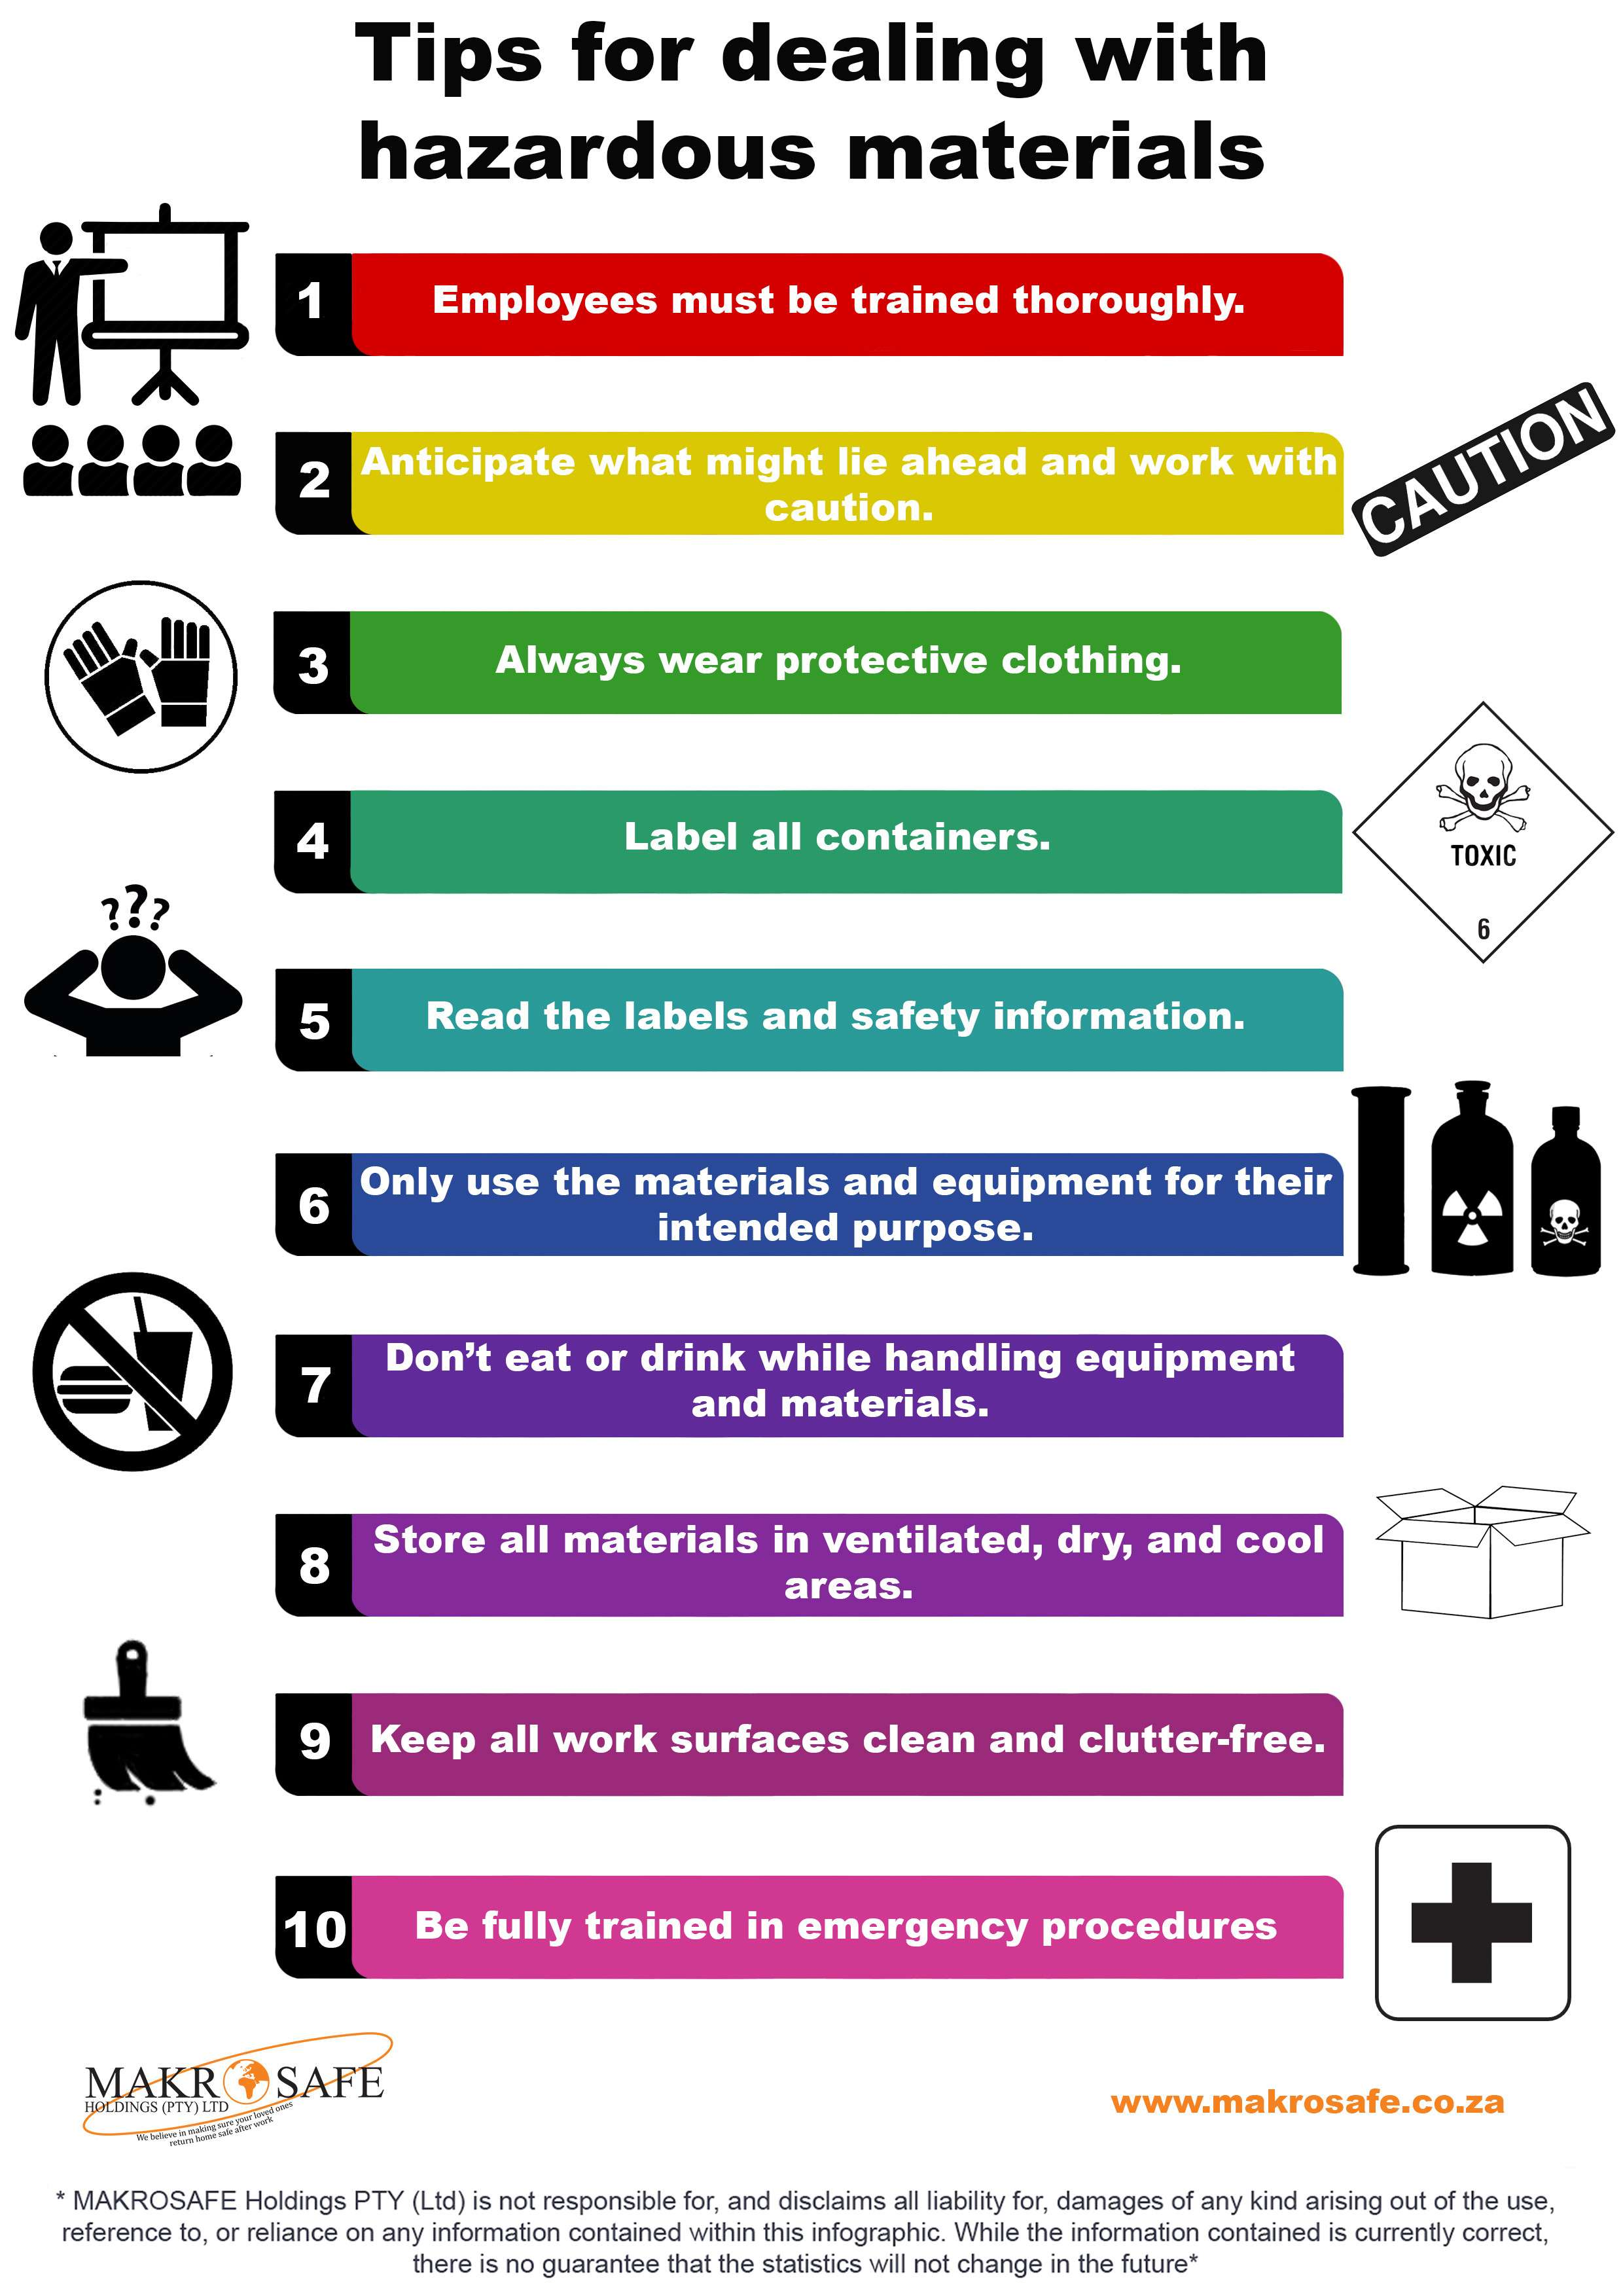 Tips for dealing with hazardous material - Airline Aviation